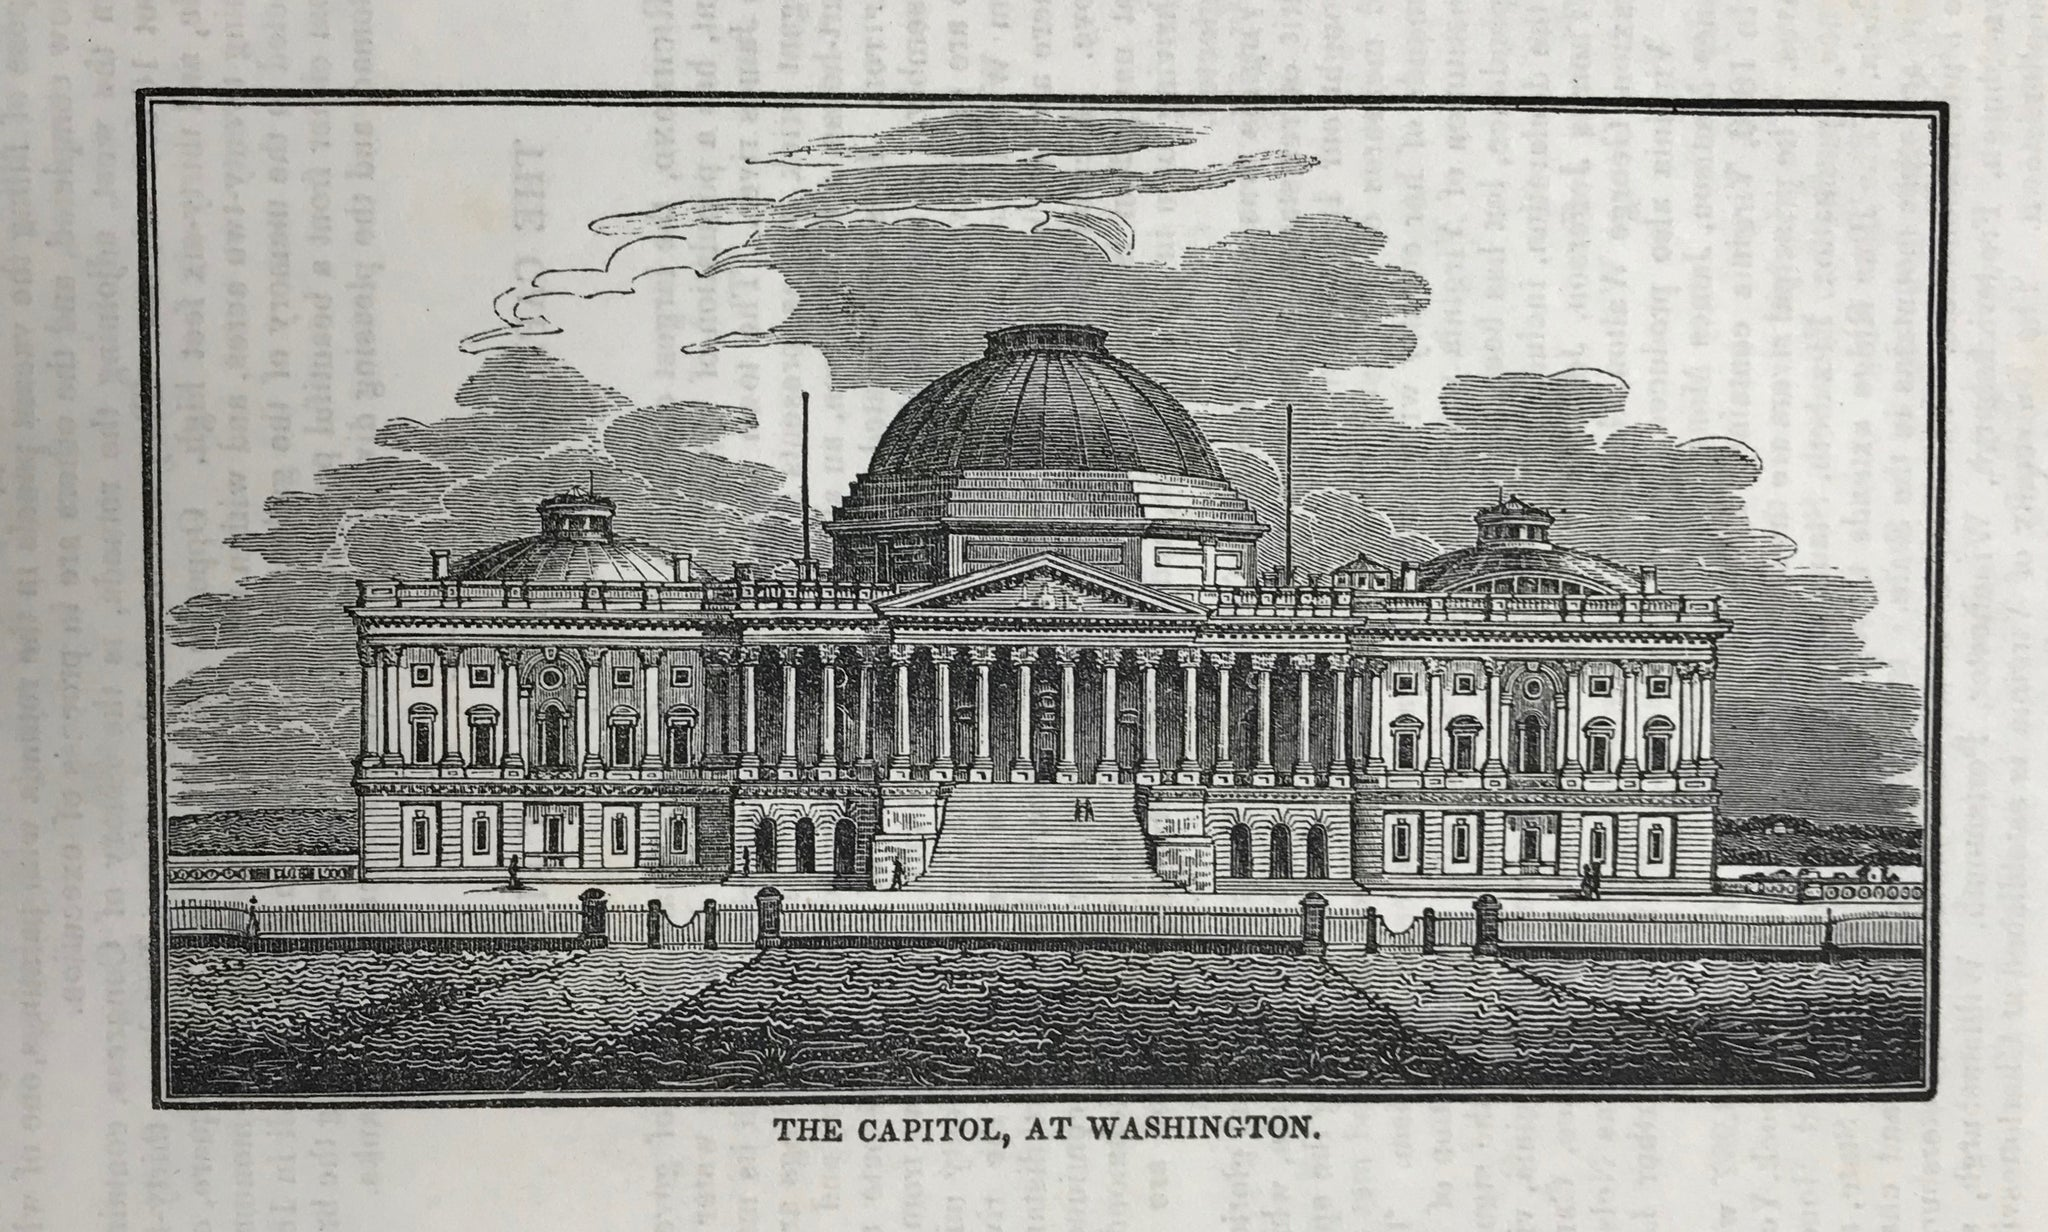 USA, The Capitol, At Washington  Wood engraving published 1855. Reverse side is printed.